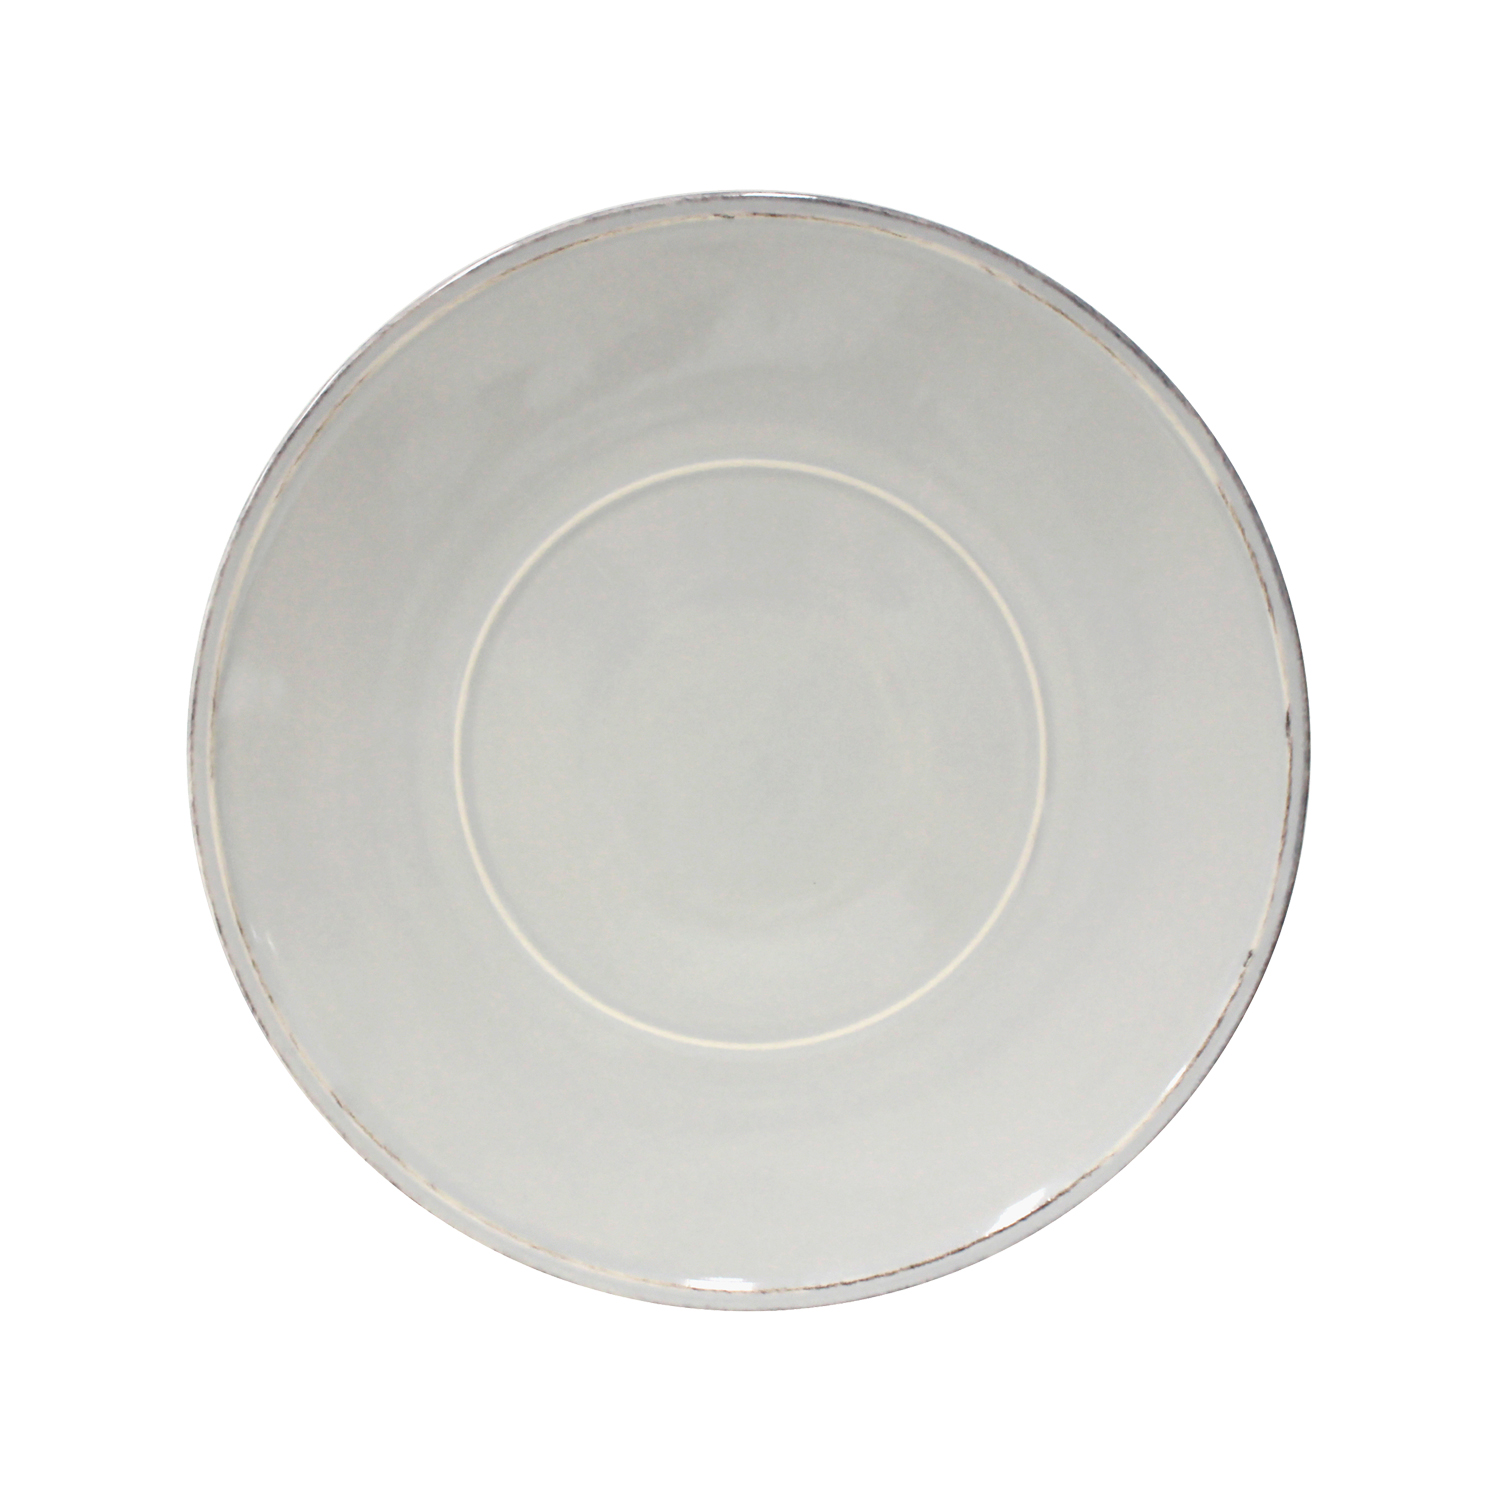 Friso Grey Round Platter/ Charger 34cm X2 Sparkle Gift